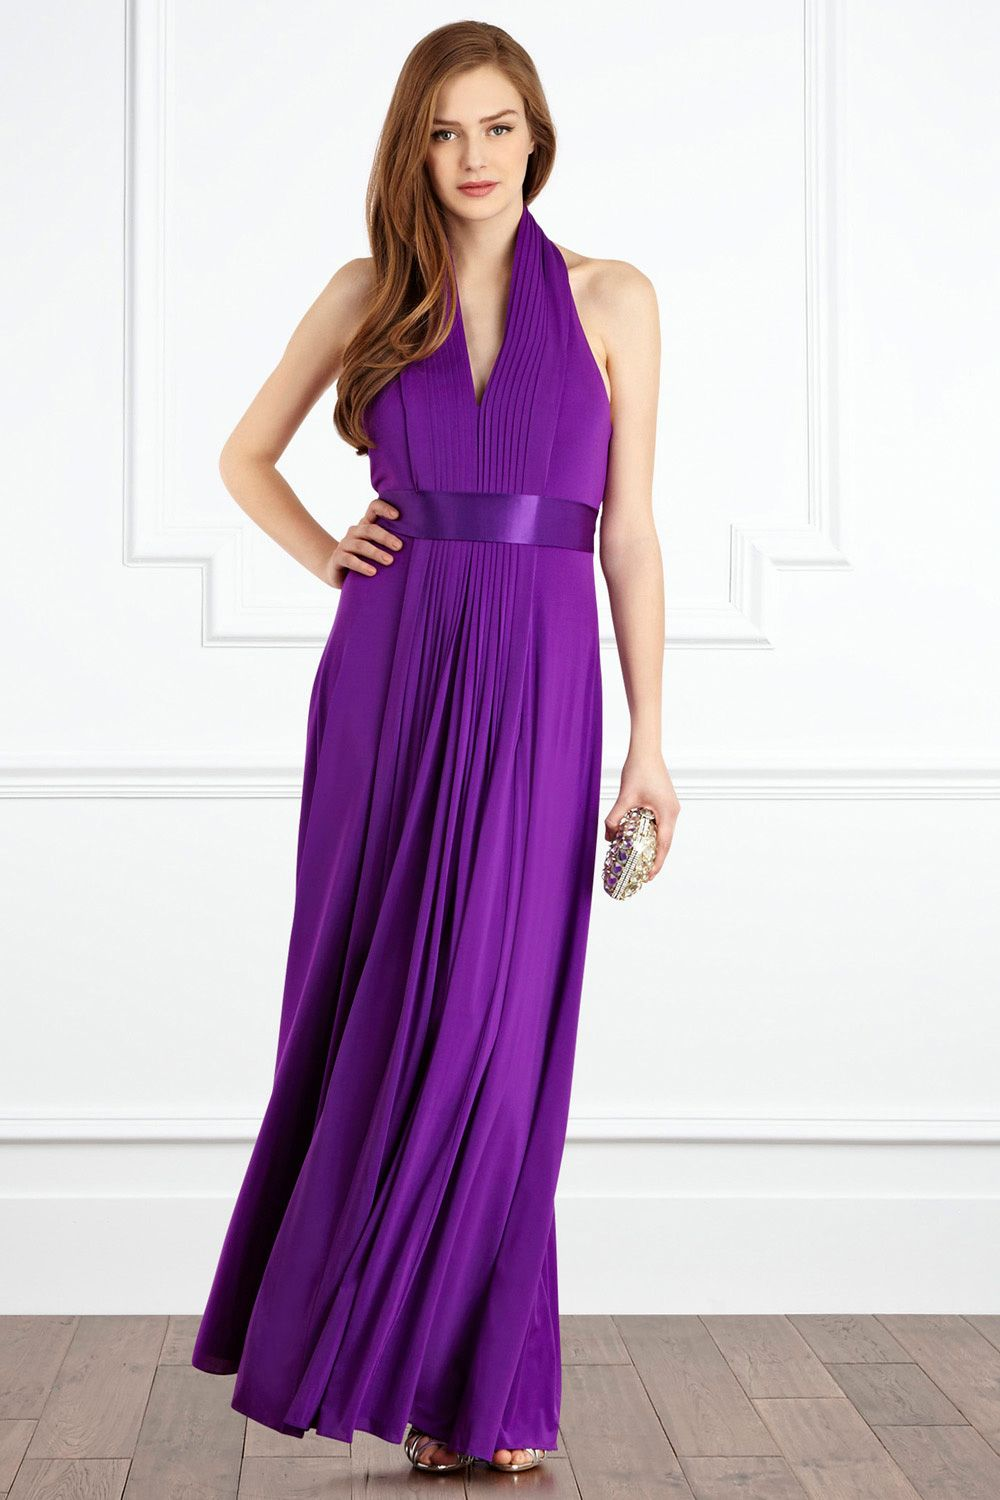 Purple Bridesmaid Dress from the High Street - Bridesmaid Boutique ...